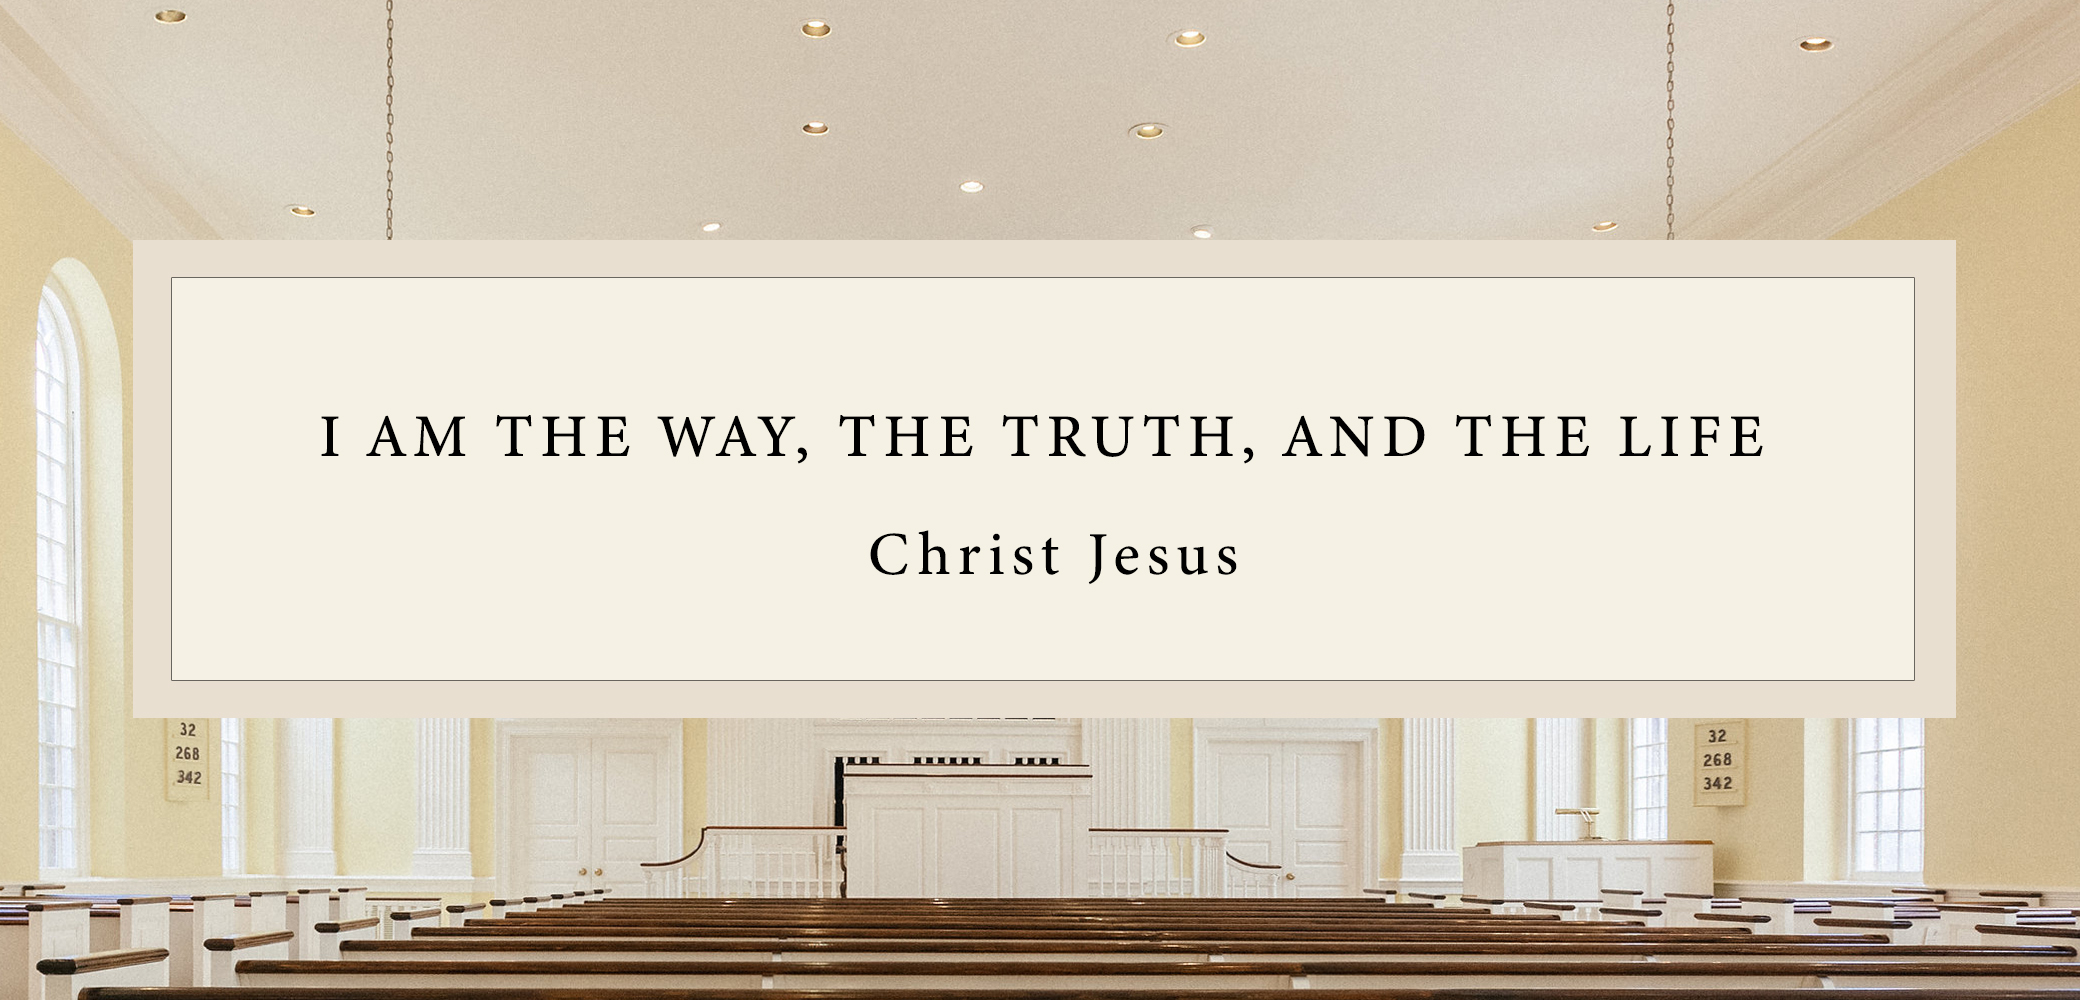 Christ Jesus quote